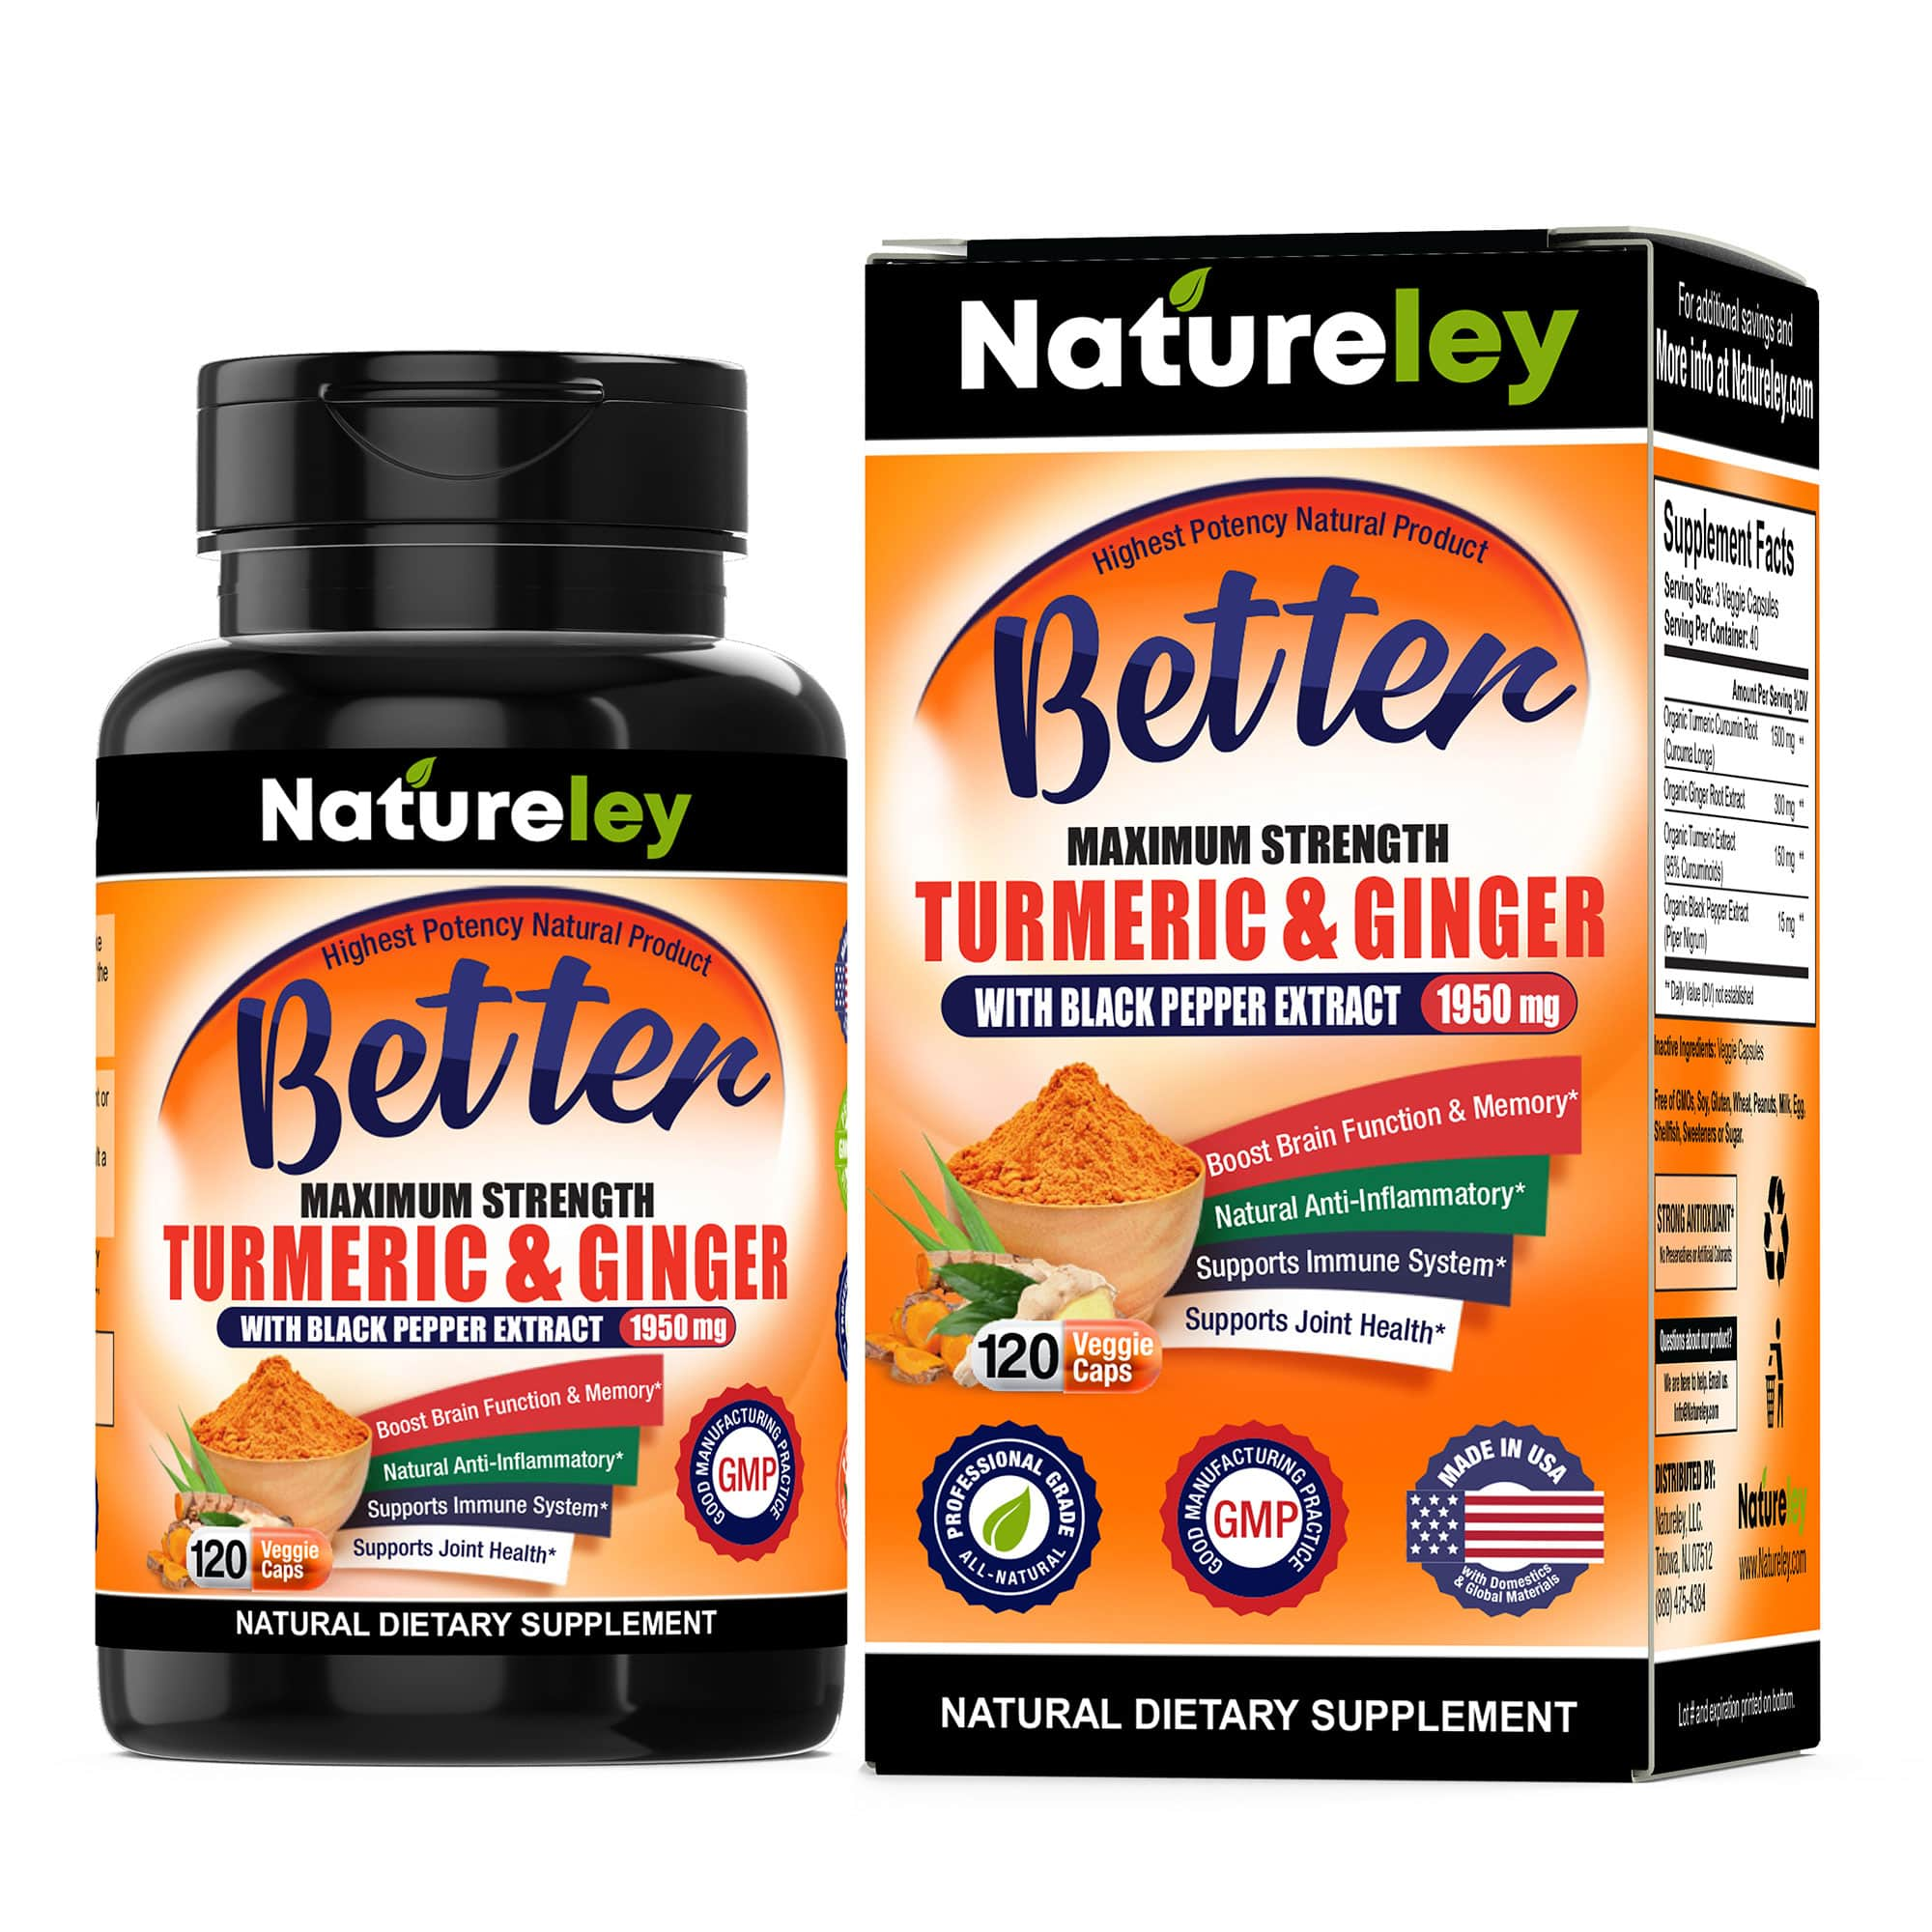 Organic Turmeric & Ginger with Black Pepper Extract - 1950 mg 120 Caps